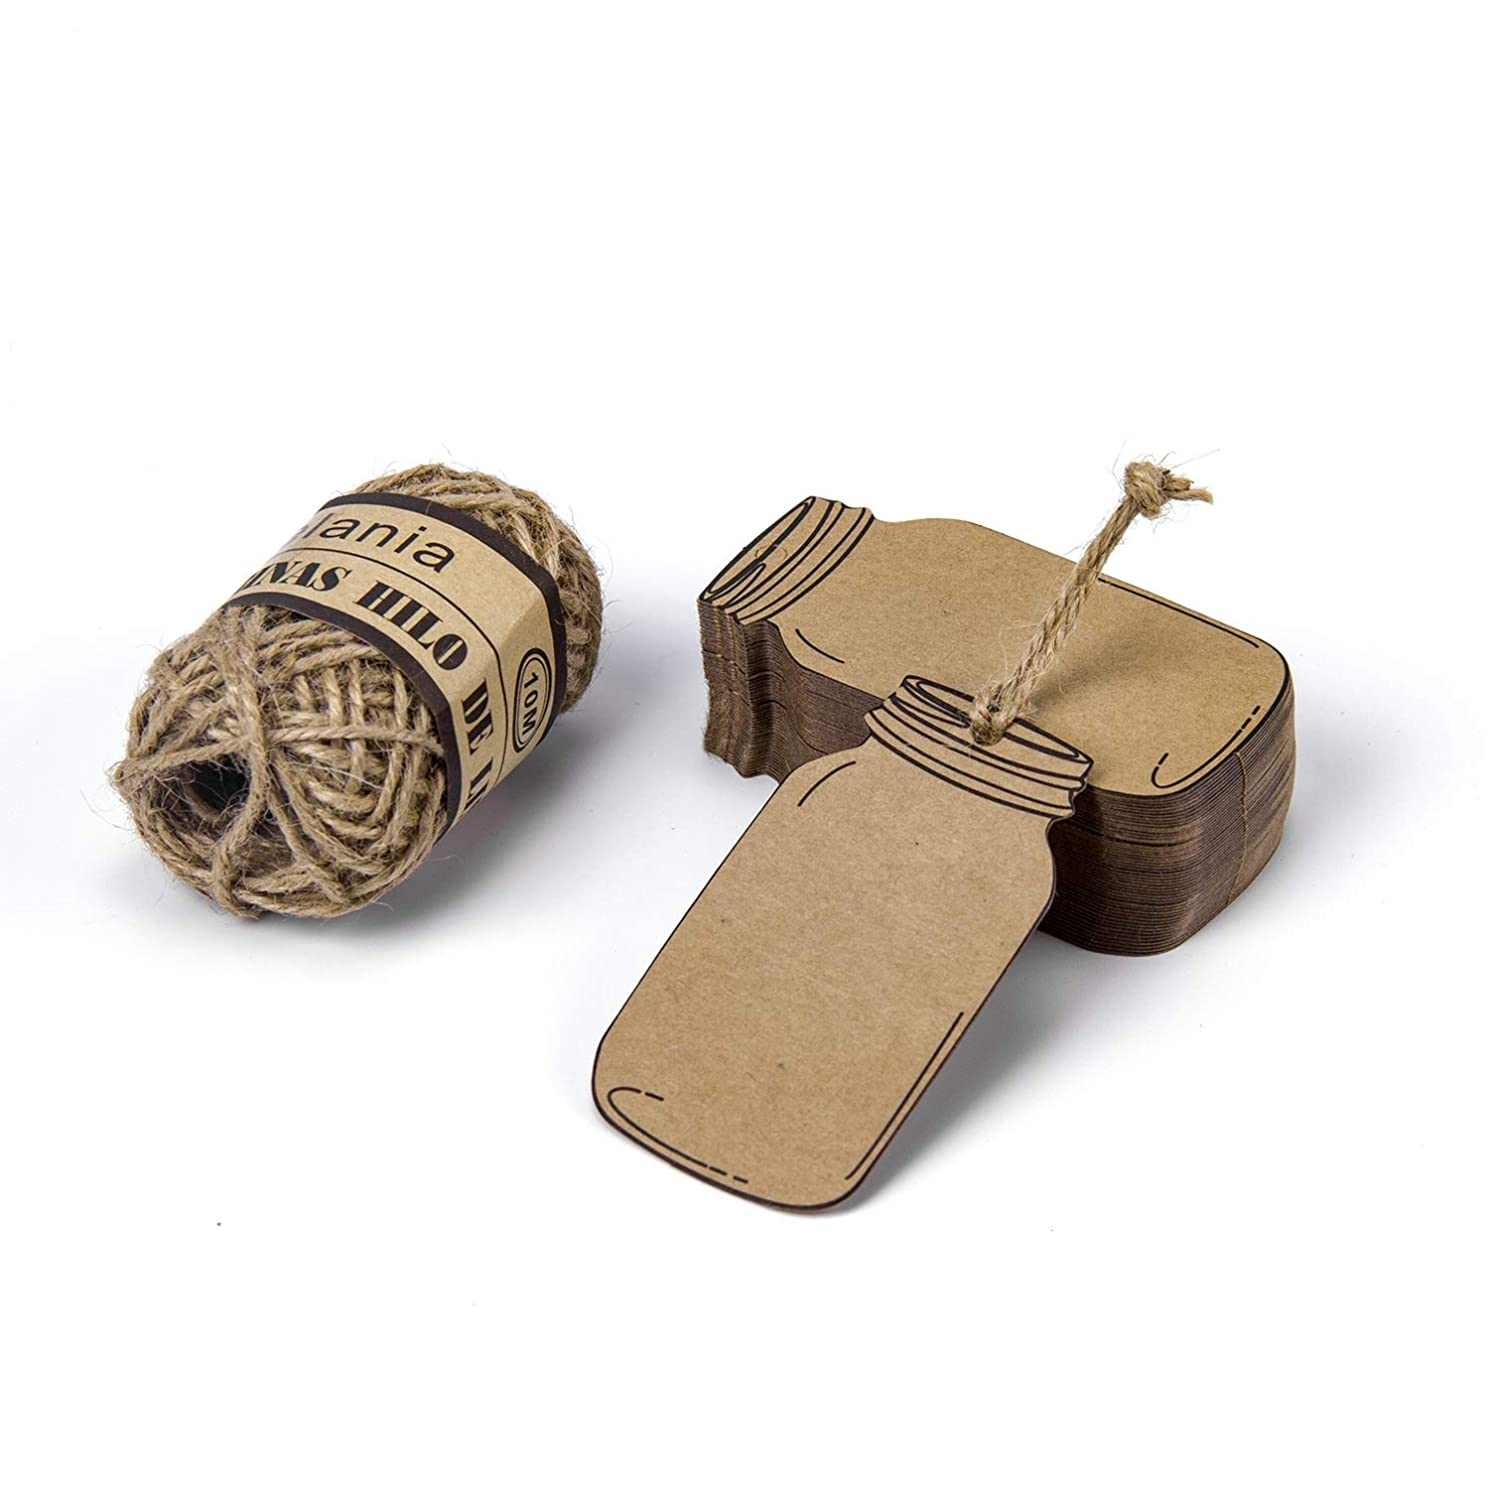 RUSPEPA Gift Tags with String - 50PCS Kraft Bottle Paper Tags with 32Feet Natural Jute Twine for Wedding, Baby Shower, Party Favors